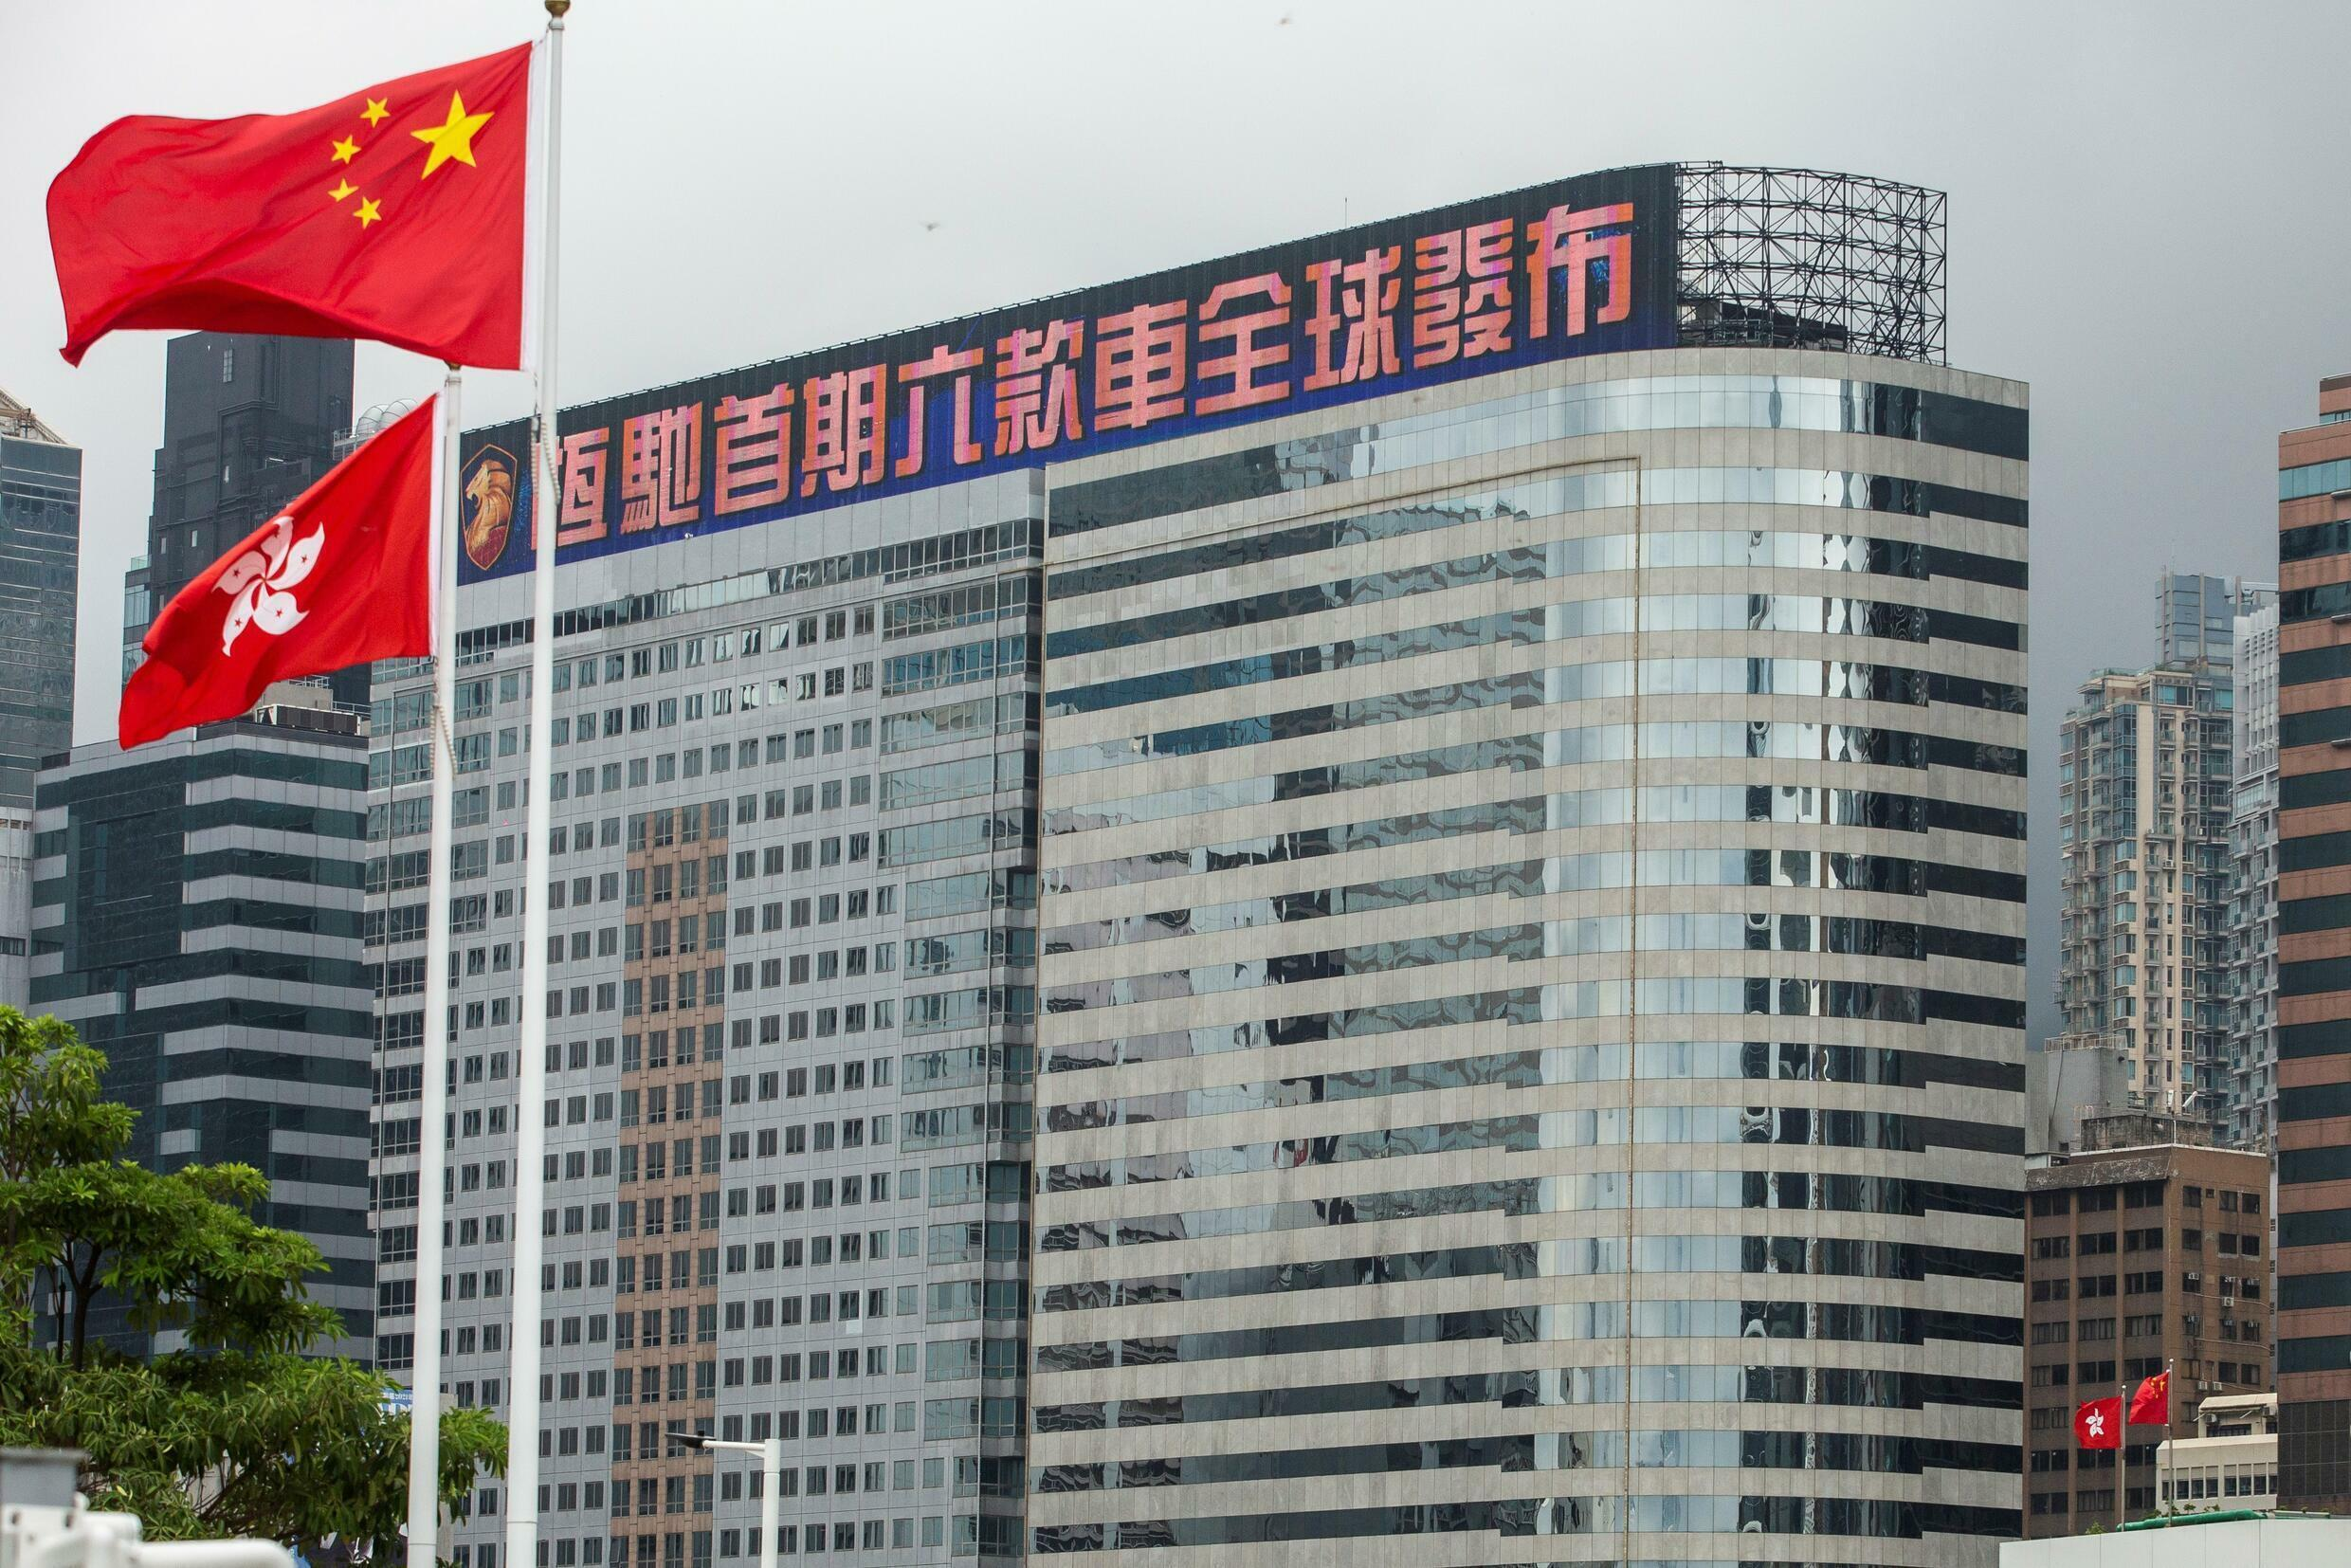 China Evergrande has tried to sell off assets to meet help pay its debts, including its Hong Kong headquarters